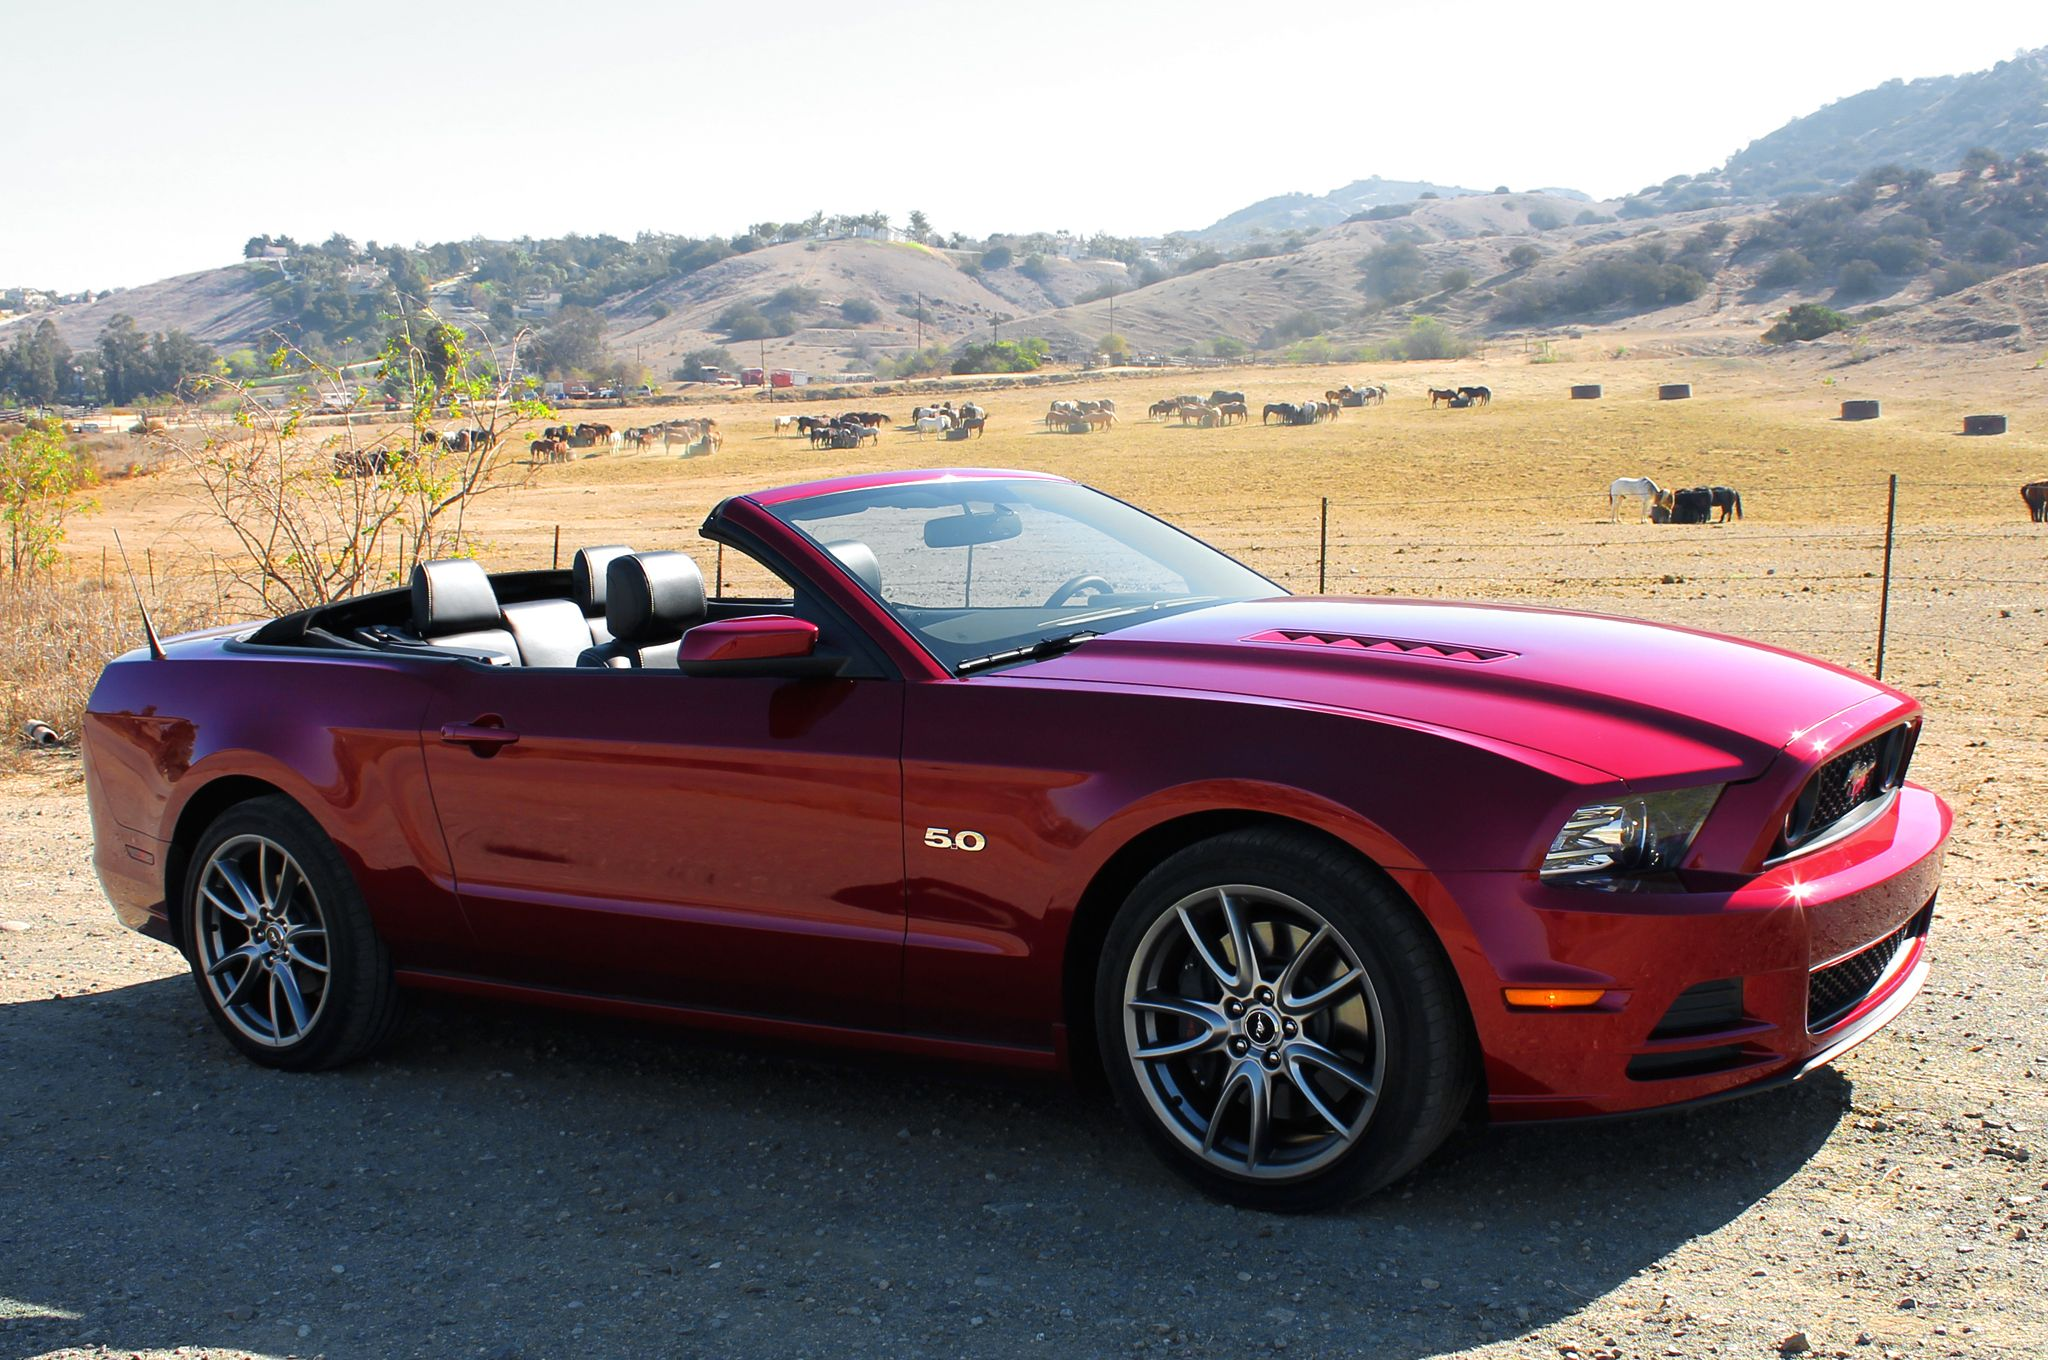 2014 Ford Mustang Gt Convertible First Test Ford Mustang Ford